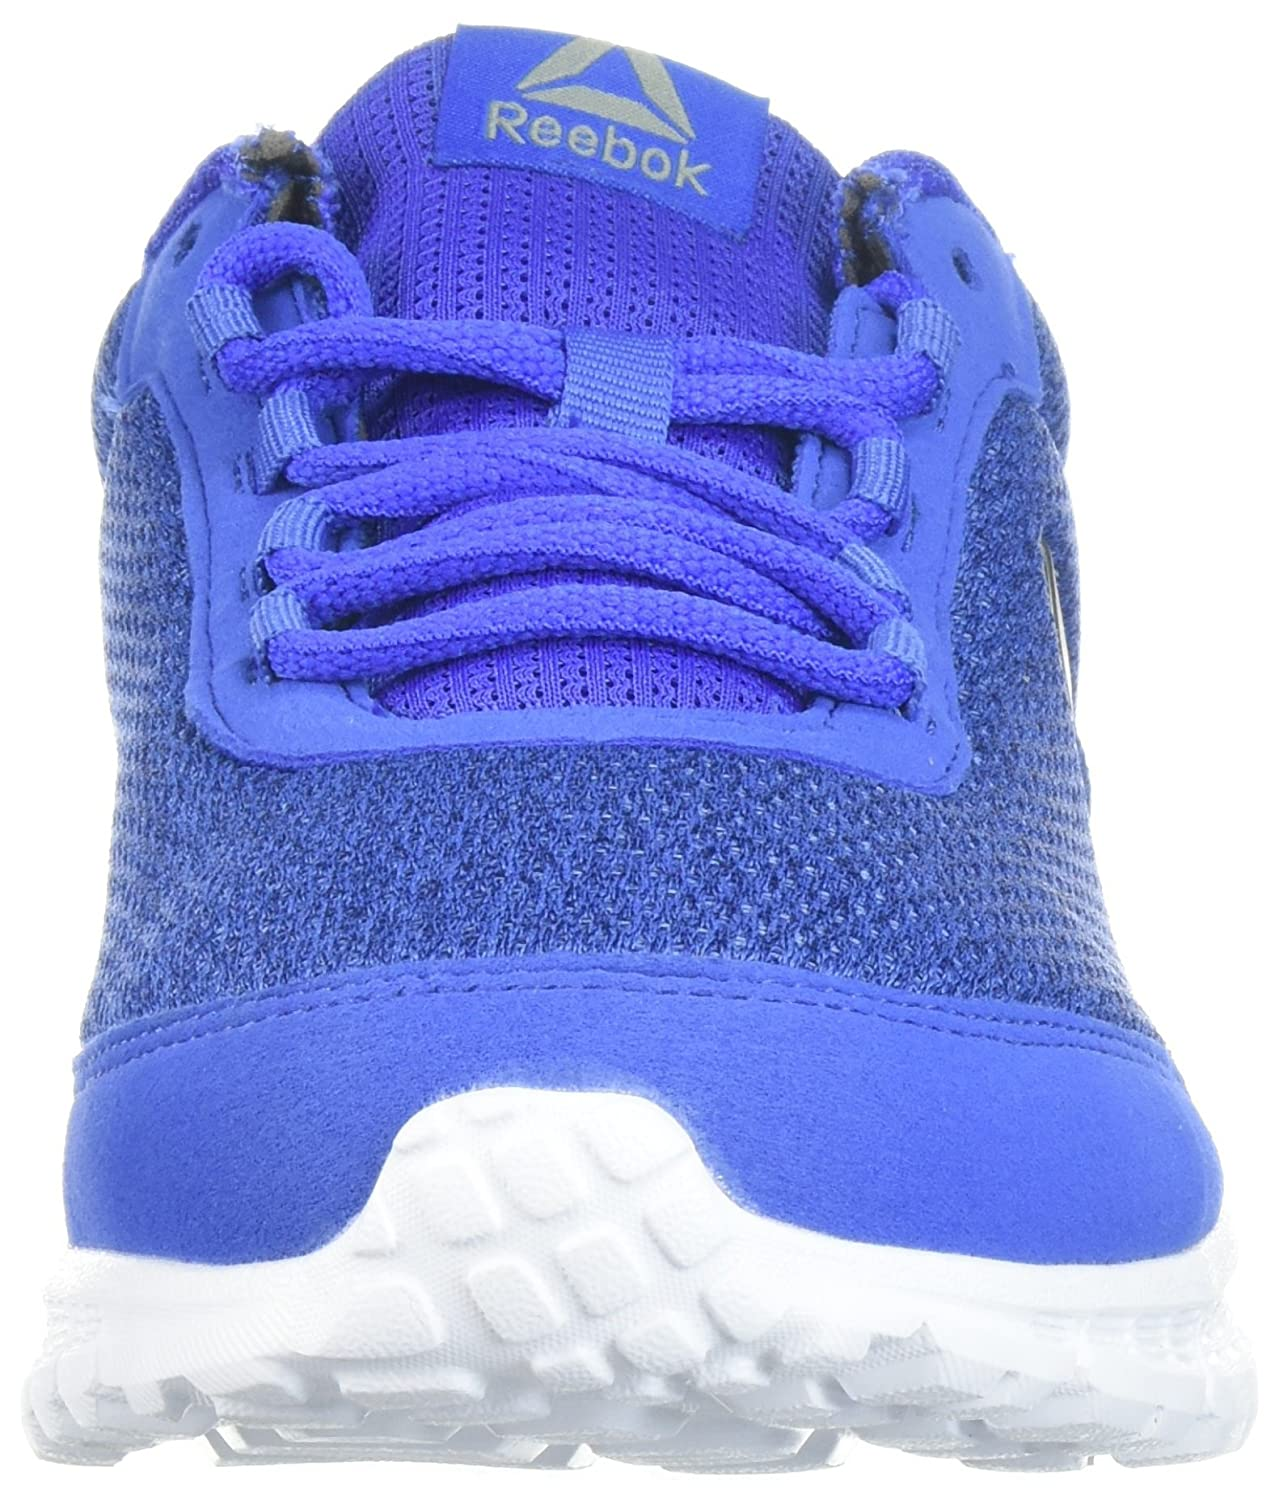 b91629939 Reebok Men's Speedlux 3.0 Sneaker, Acid Blue/Coll. Navy/Electric Flash/White /Pewter, 6.5 D(M) US: Amazon.co.uk: Shoes & Bags